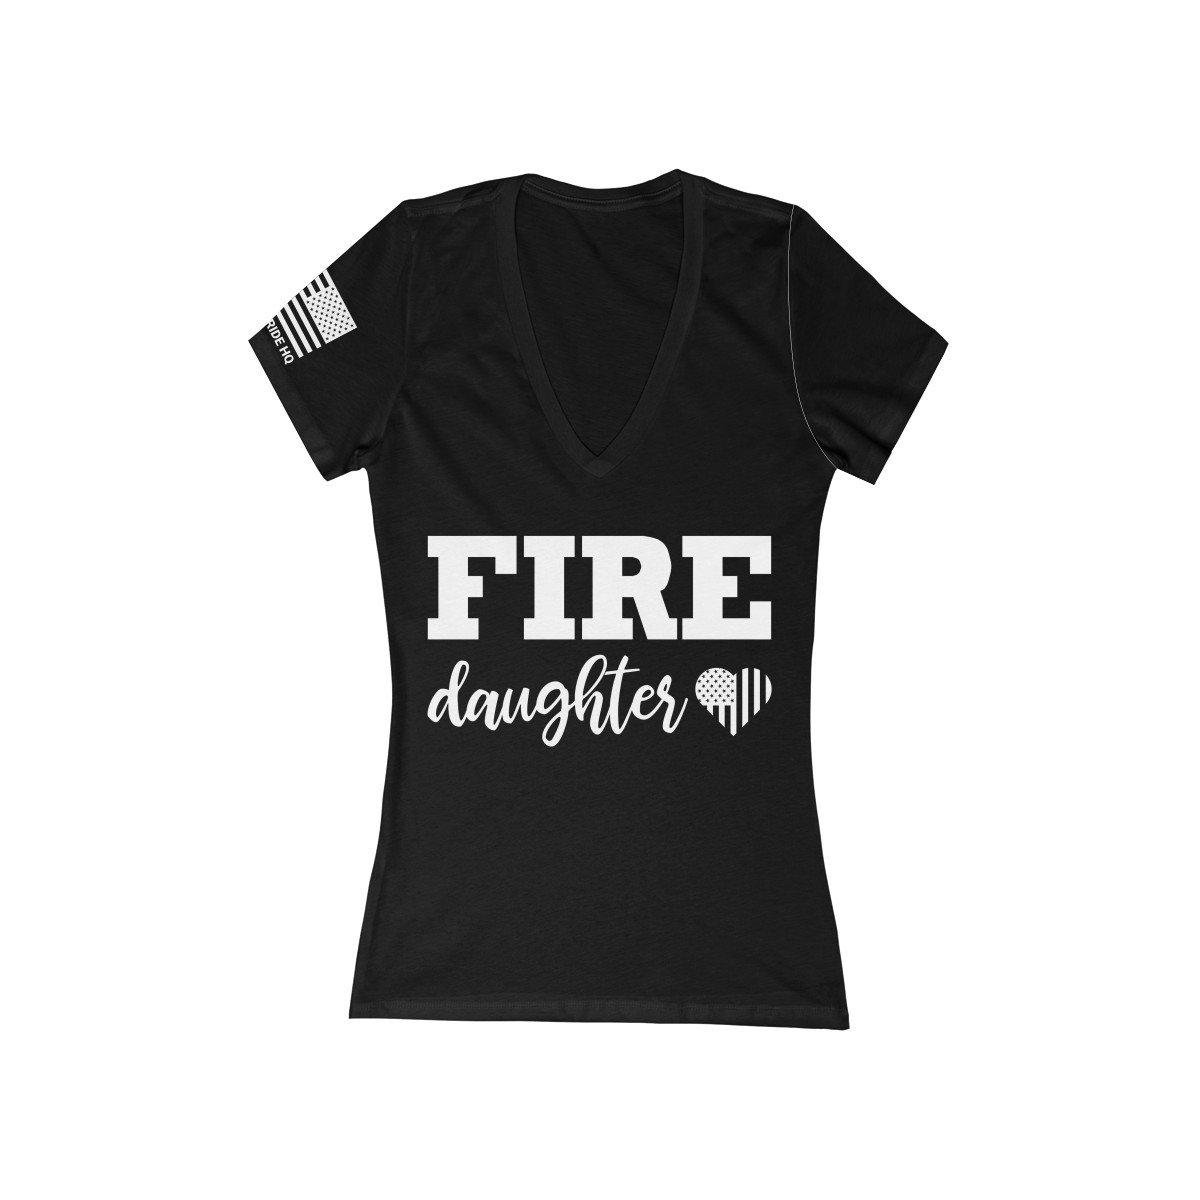 Firefighter's Daughter Women's V-Neck Tee